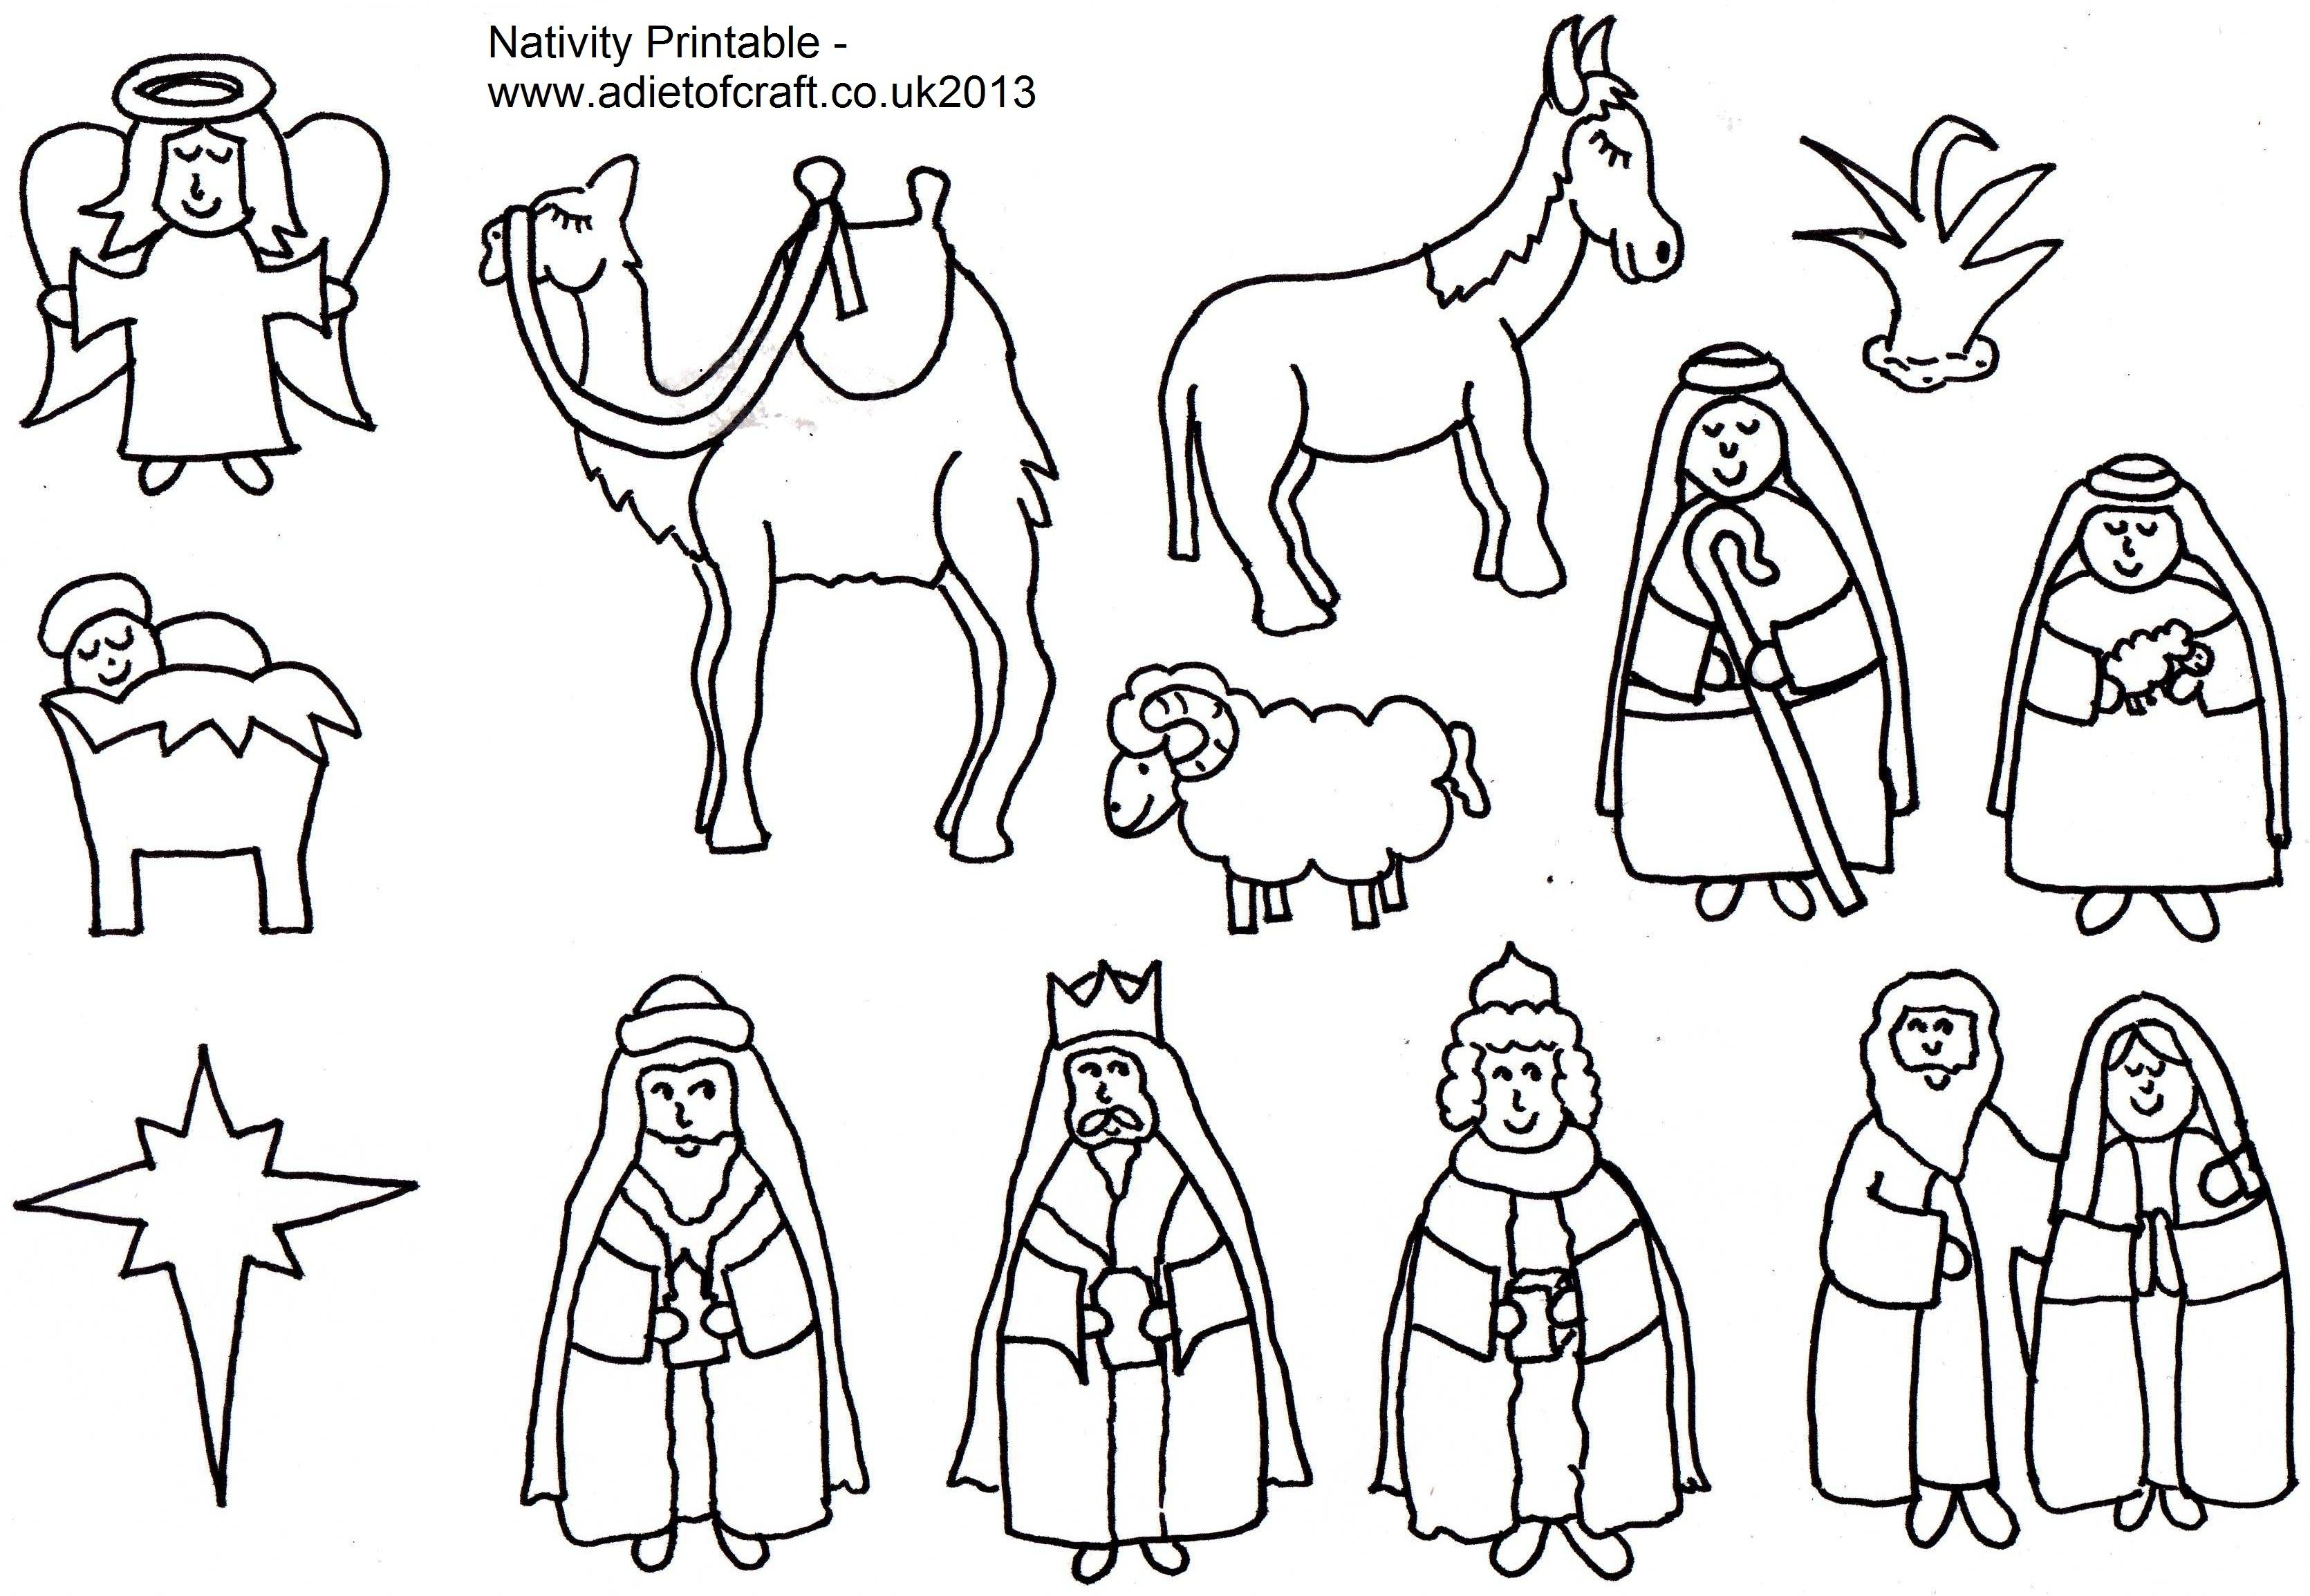 Adult Coloring Pages Of The Nativity Free In Nativity Coloring Pages - Free Printable Nativity Story Coloring Pages